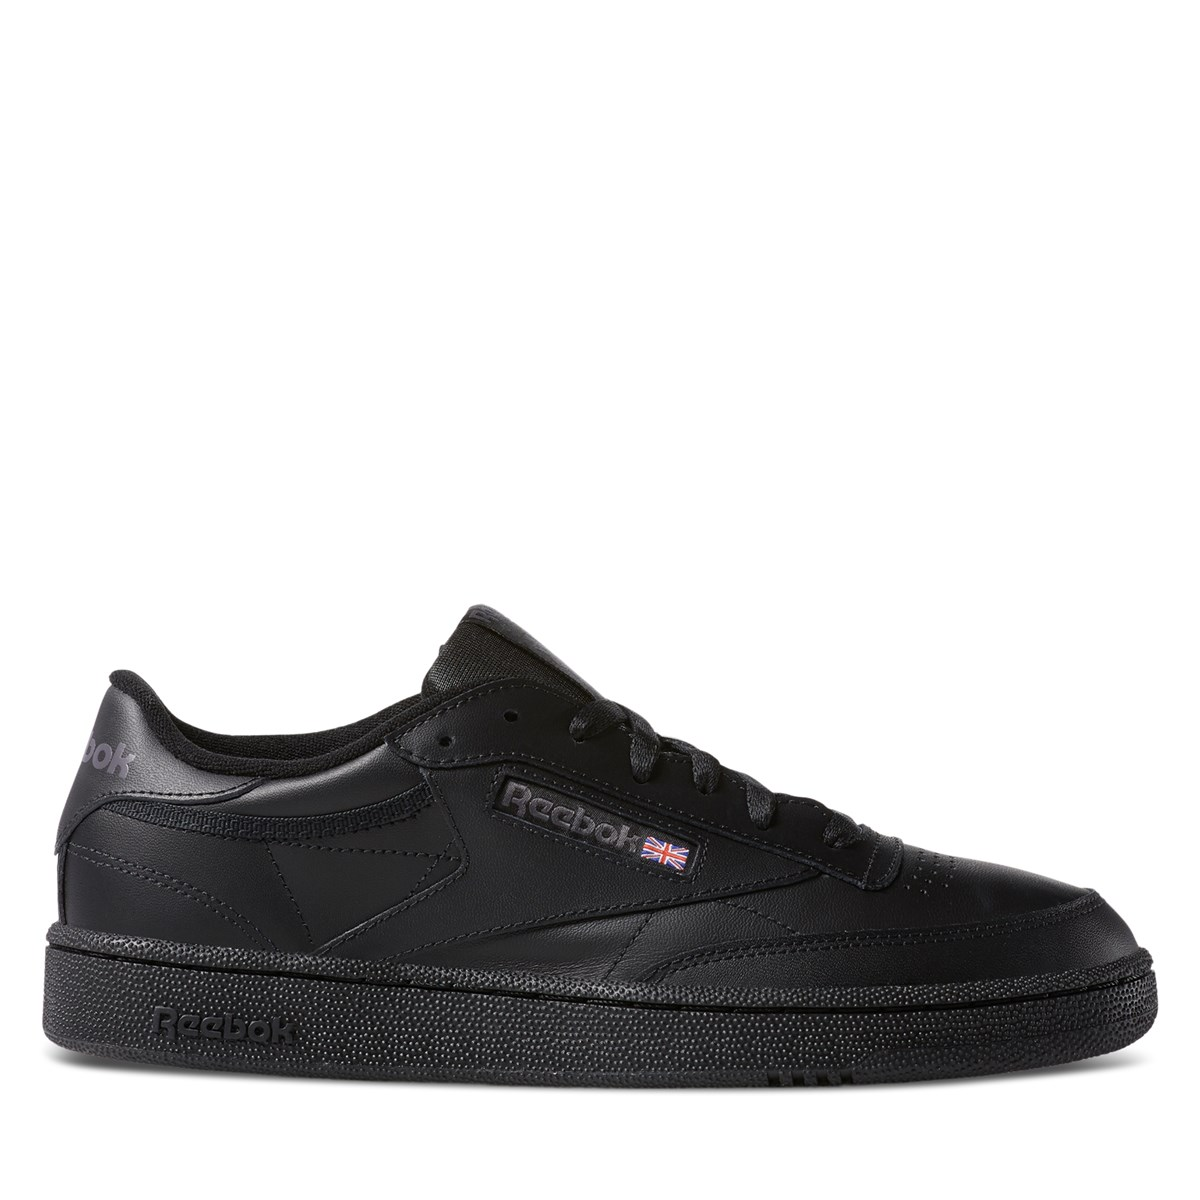 Men's Club C Sneakers in Black